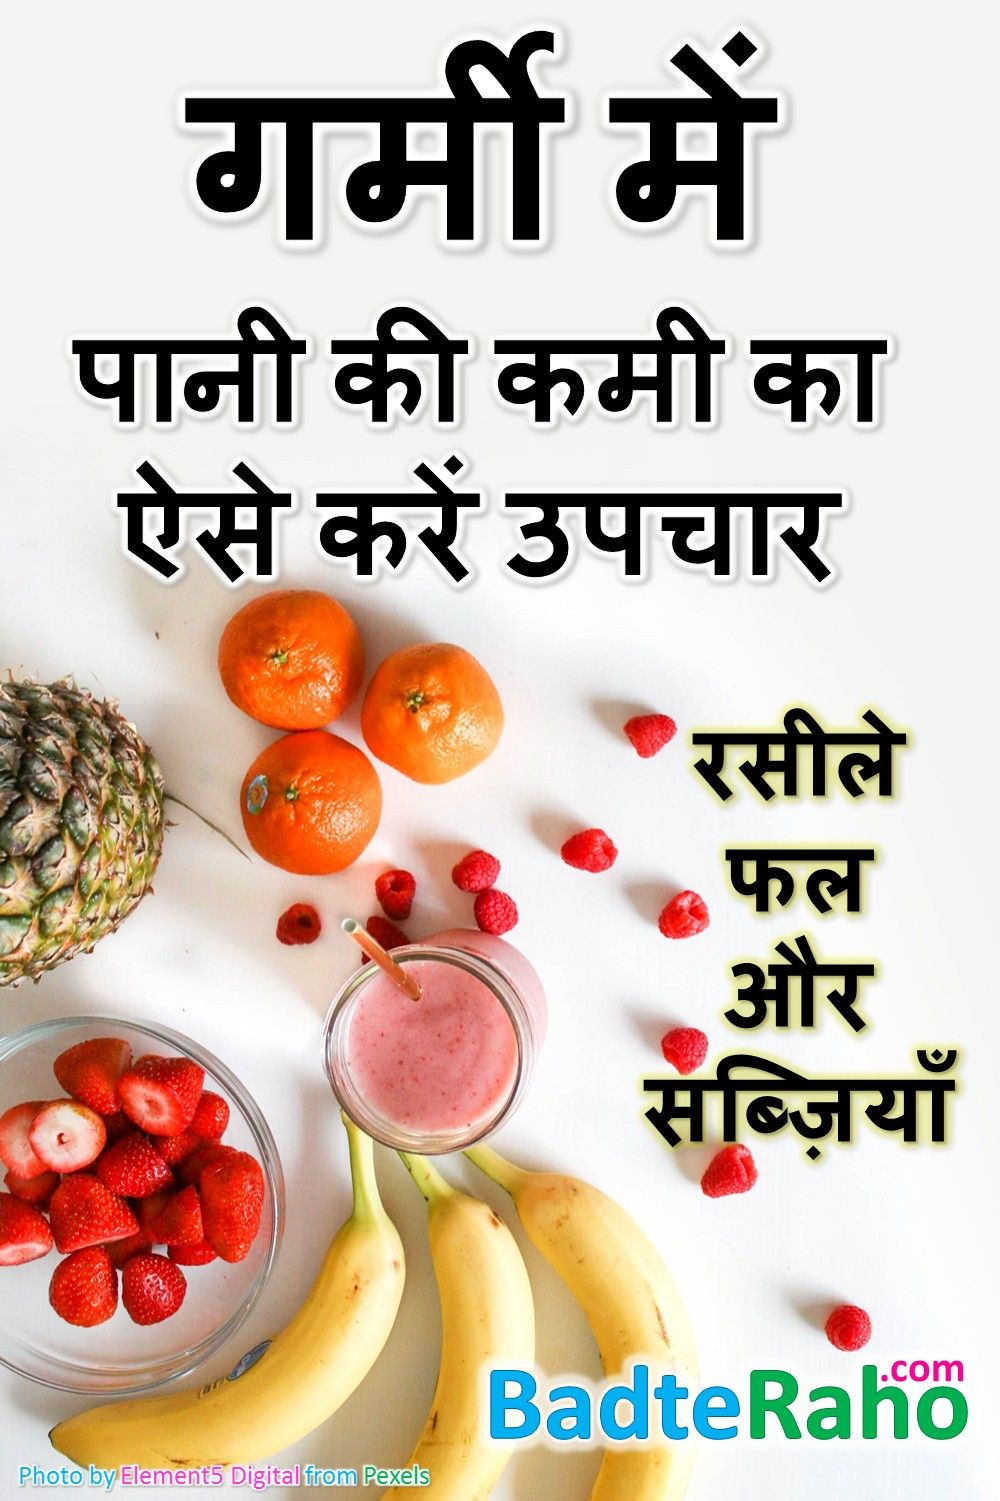 juicy-fruits-and-vegetables